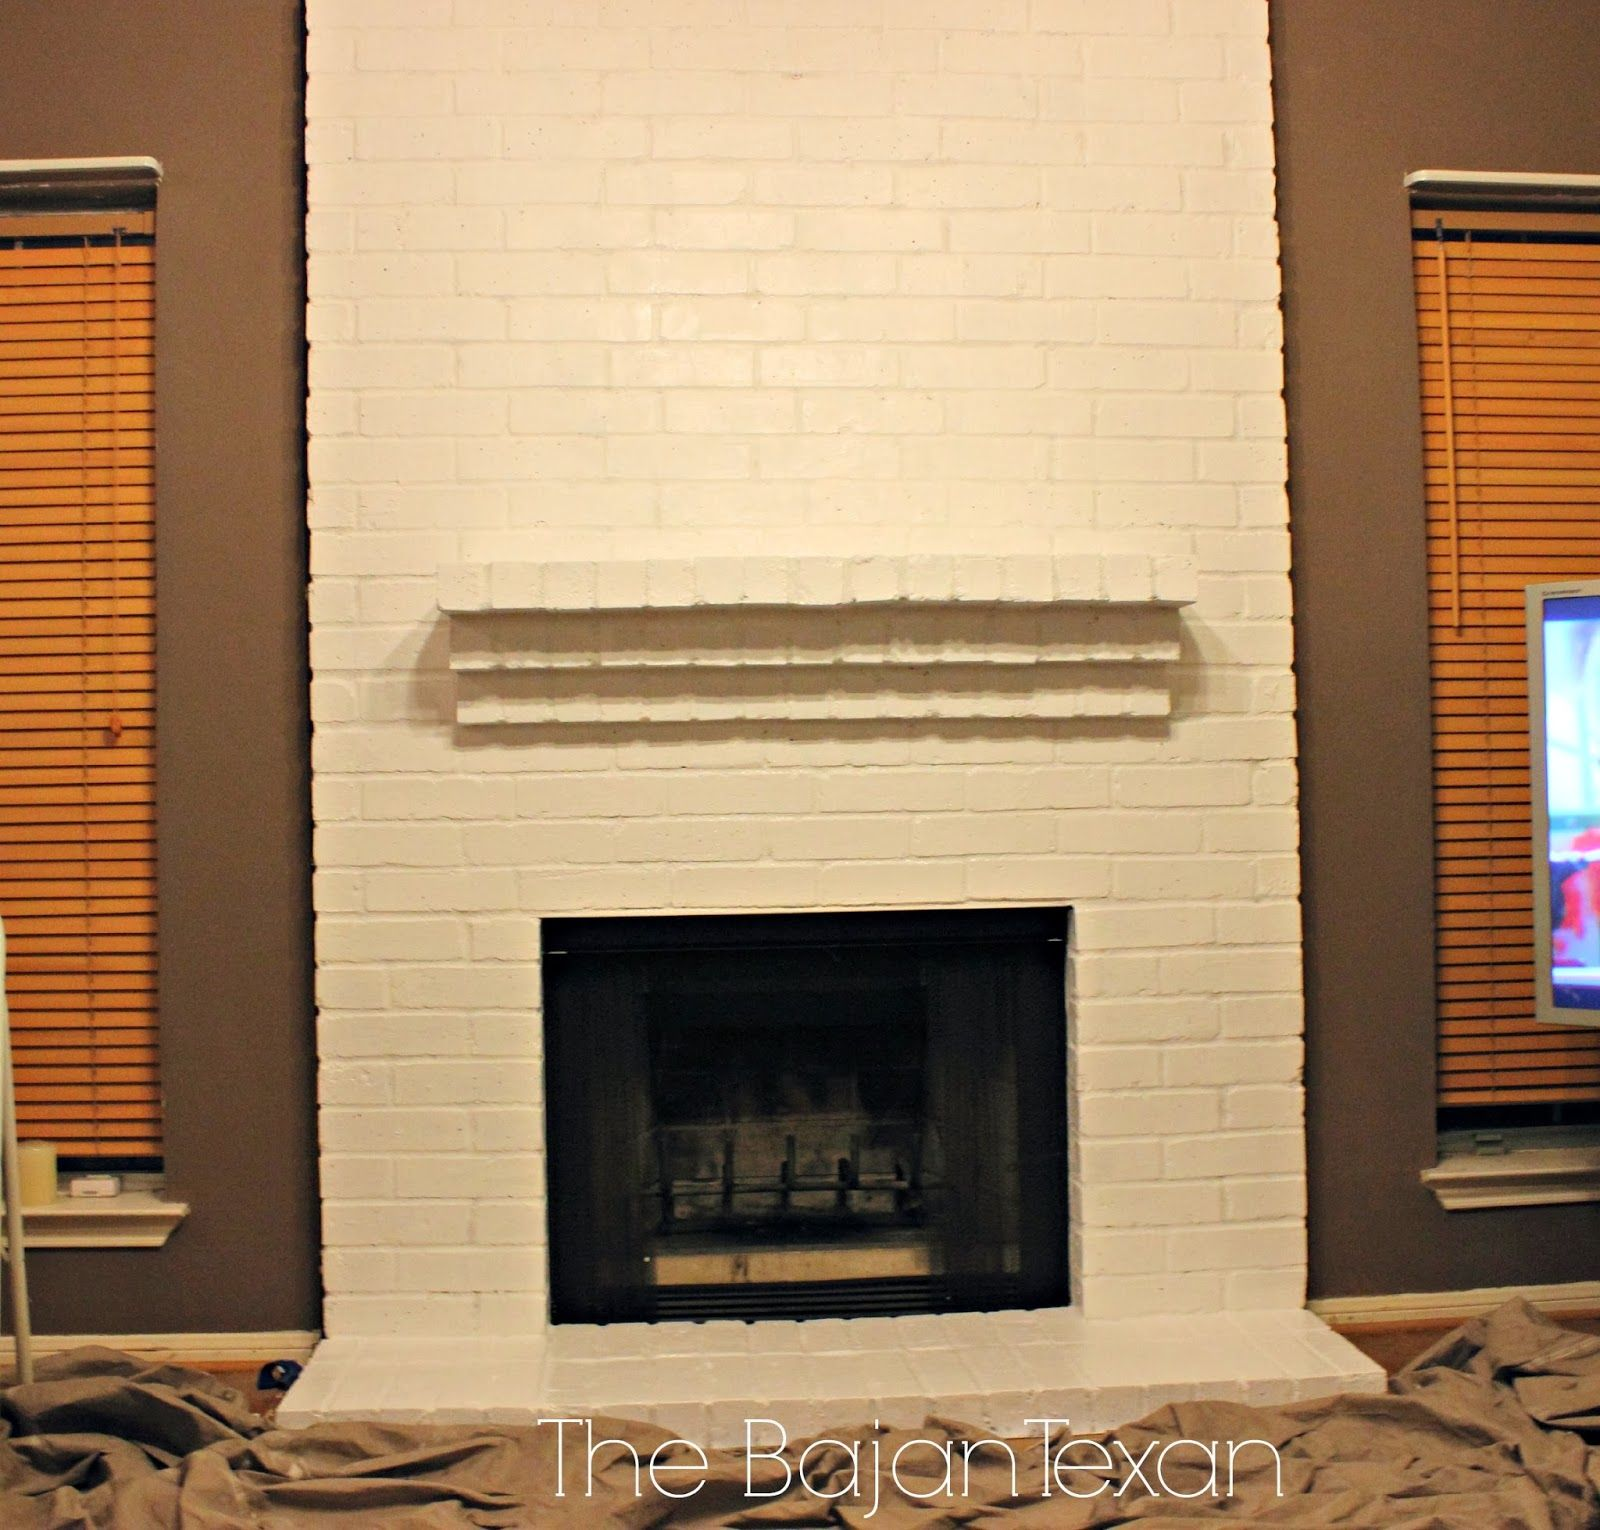 25 Most Popular Fireplace Tiles Ideas This Year, You Need To Know ...